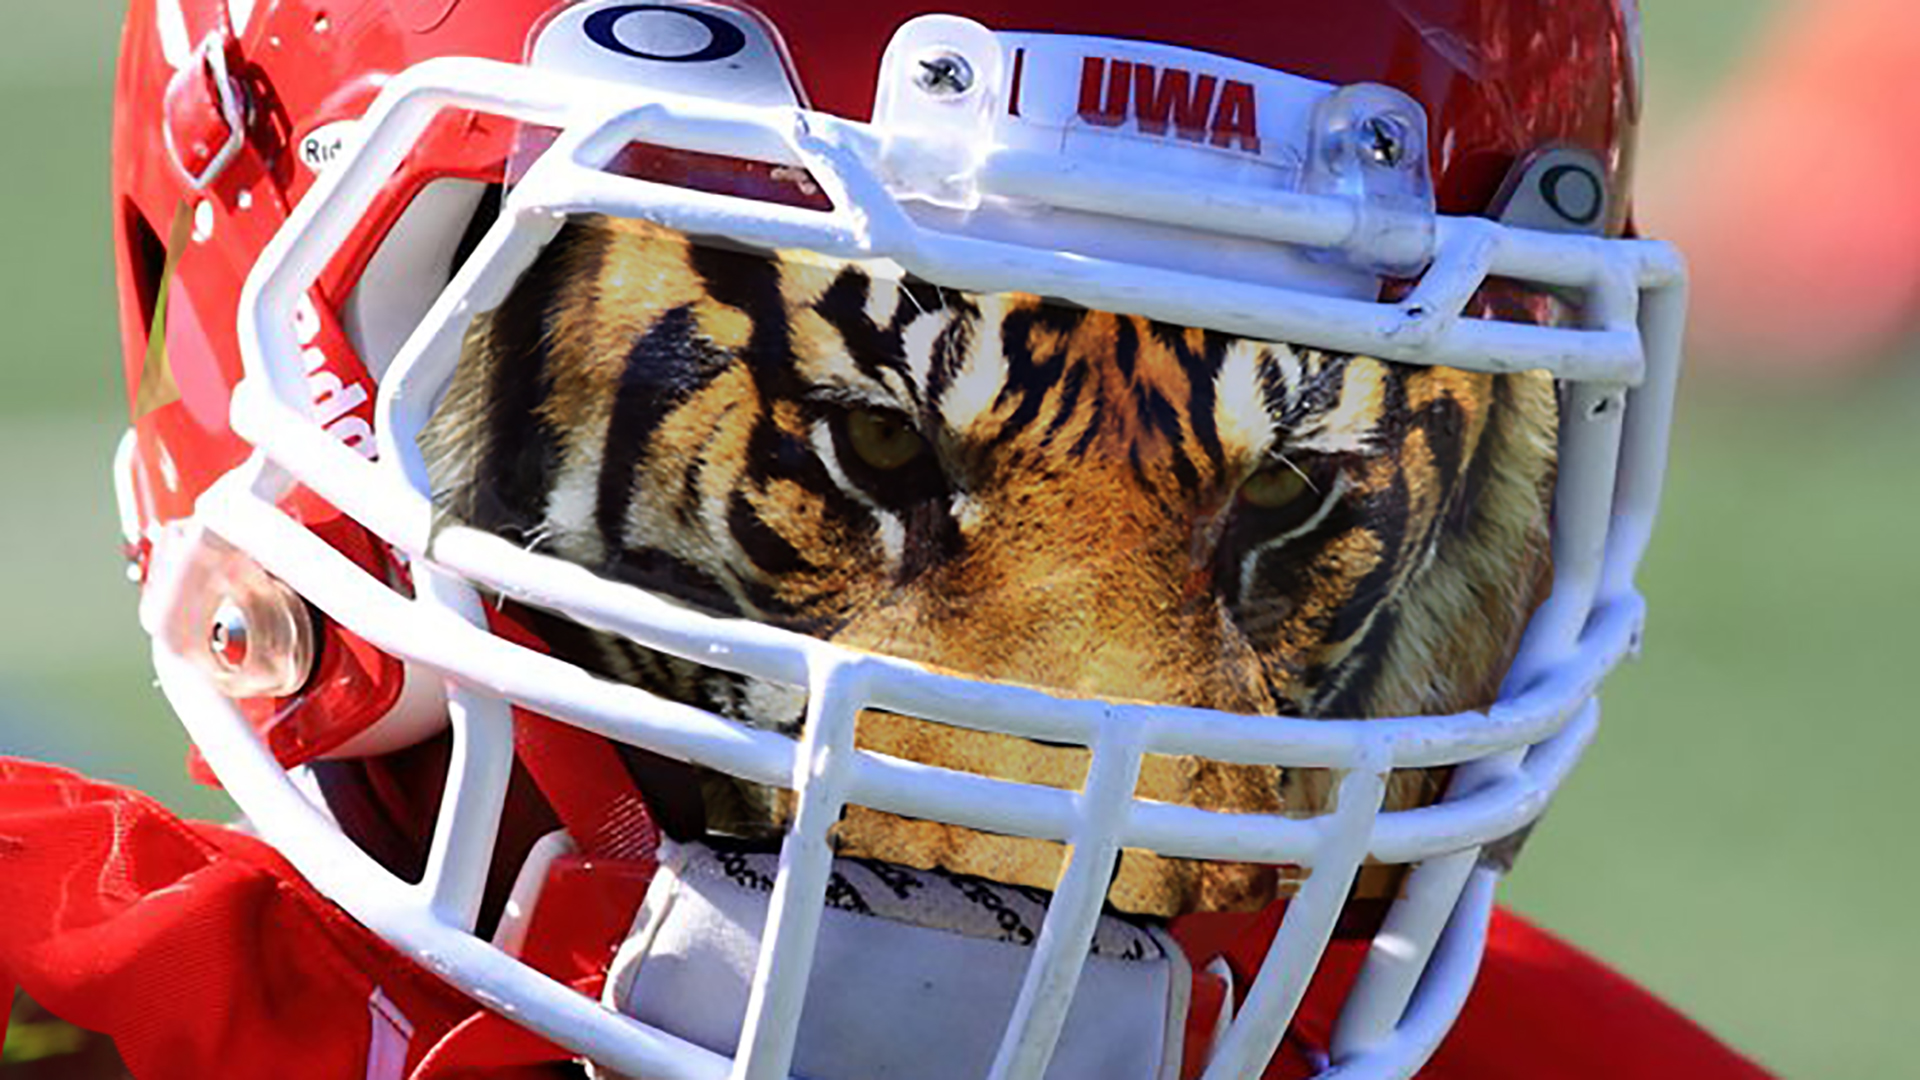 Toys Collected Libby Honored at UWA Spring Football Game